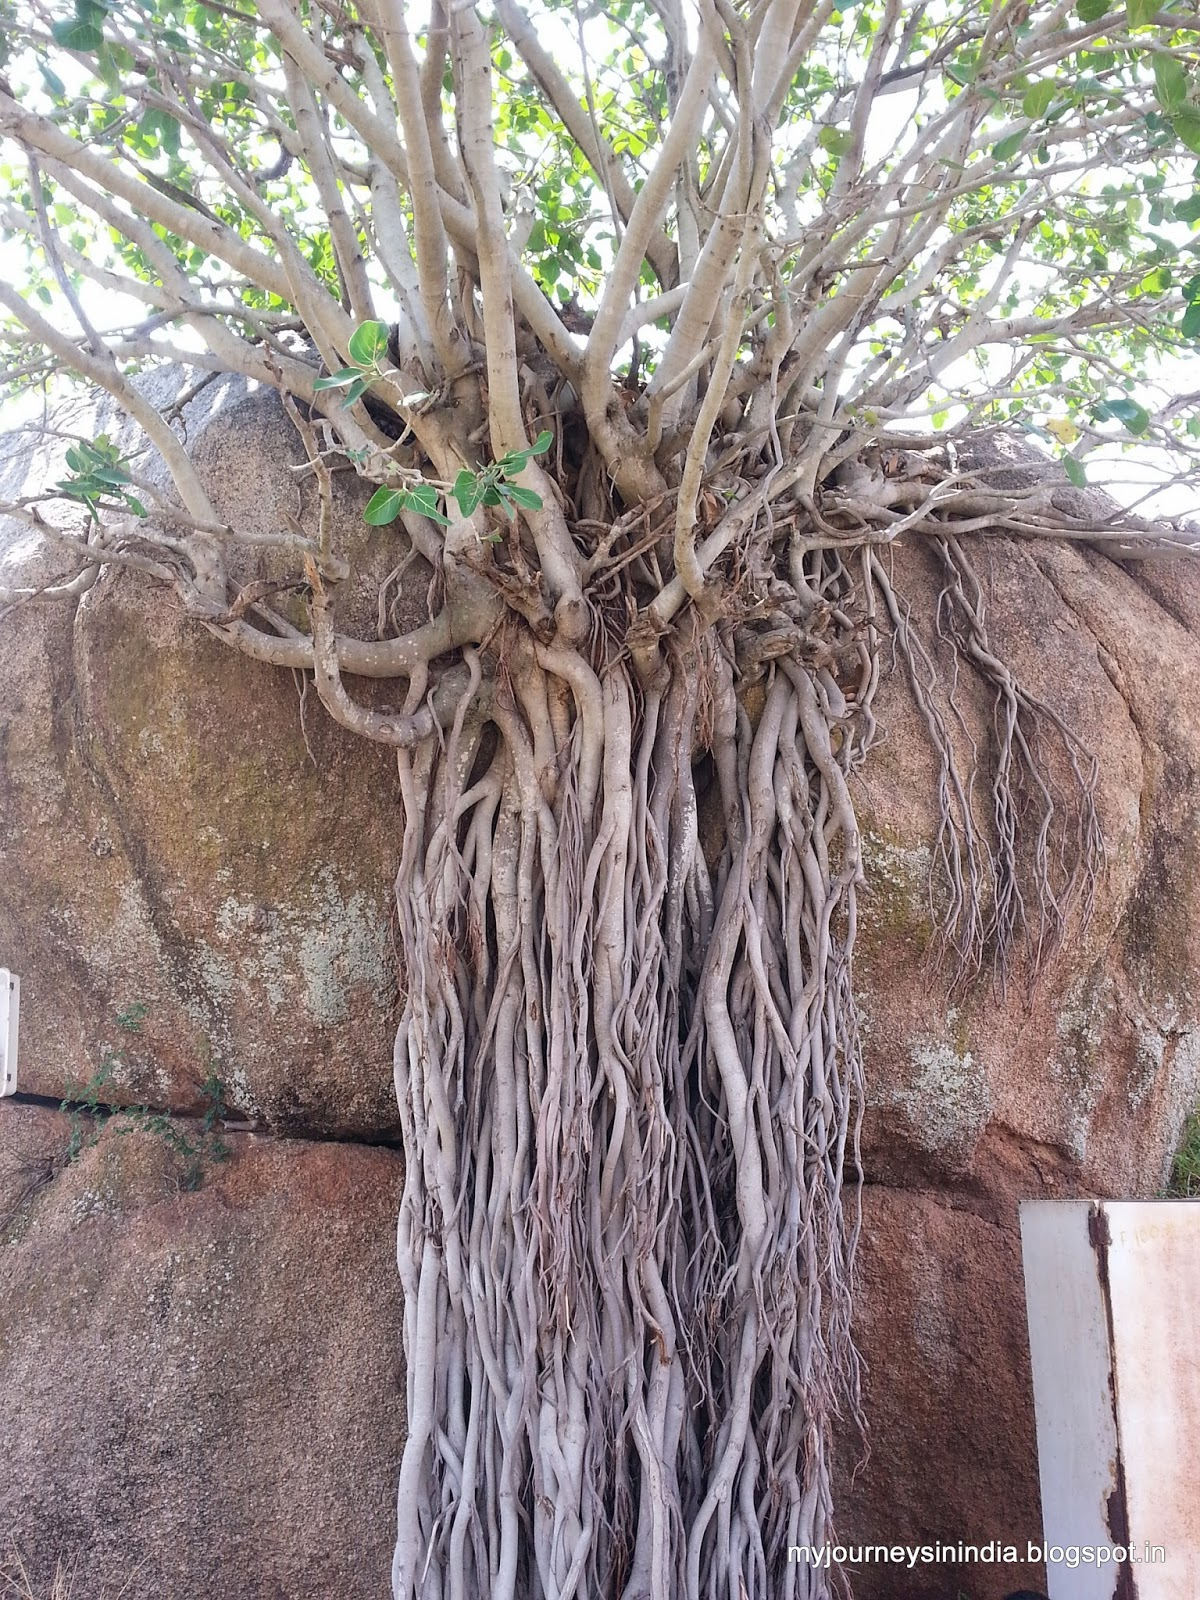 Trees growing on rocks - Chitradurga